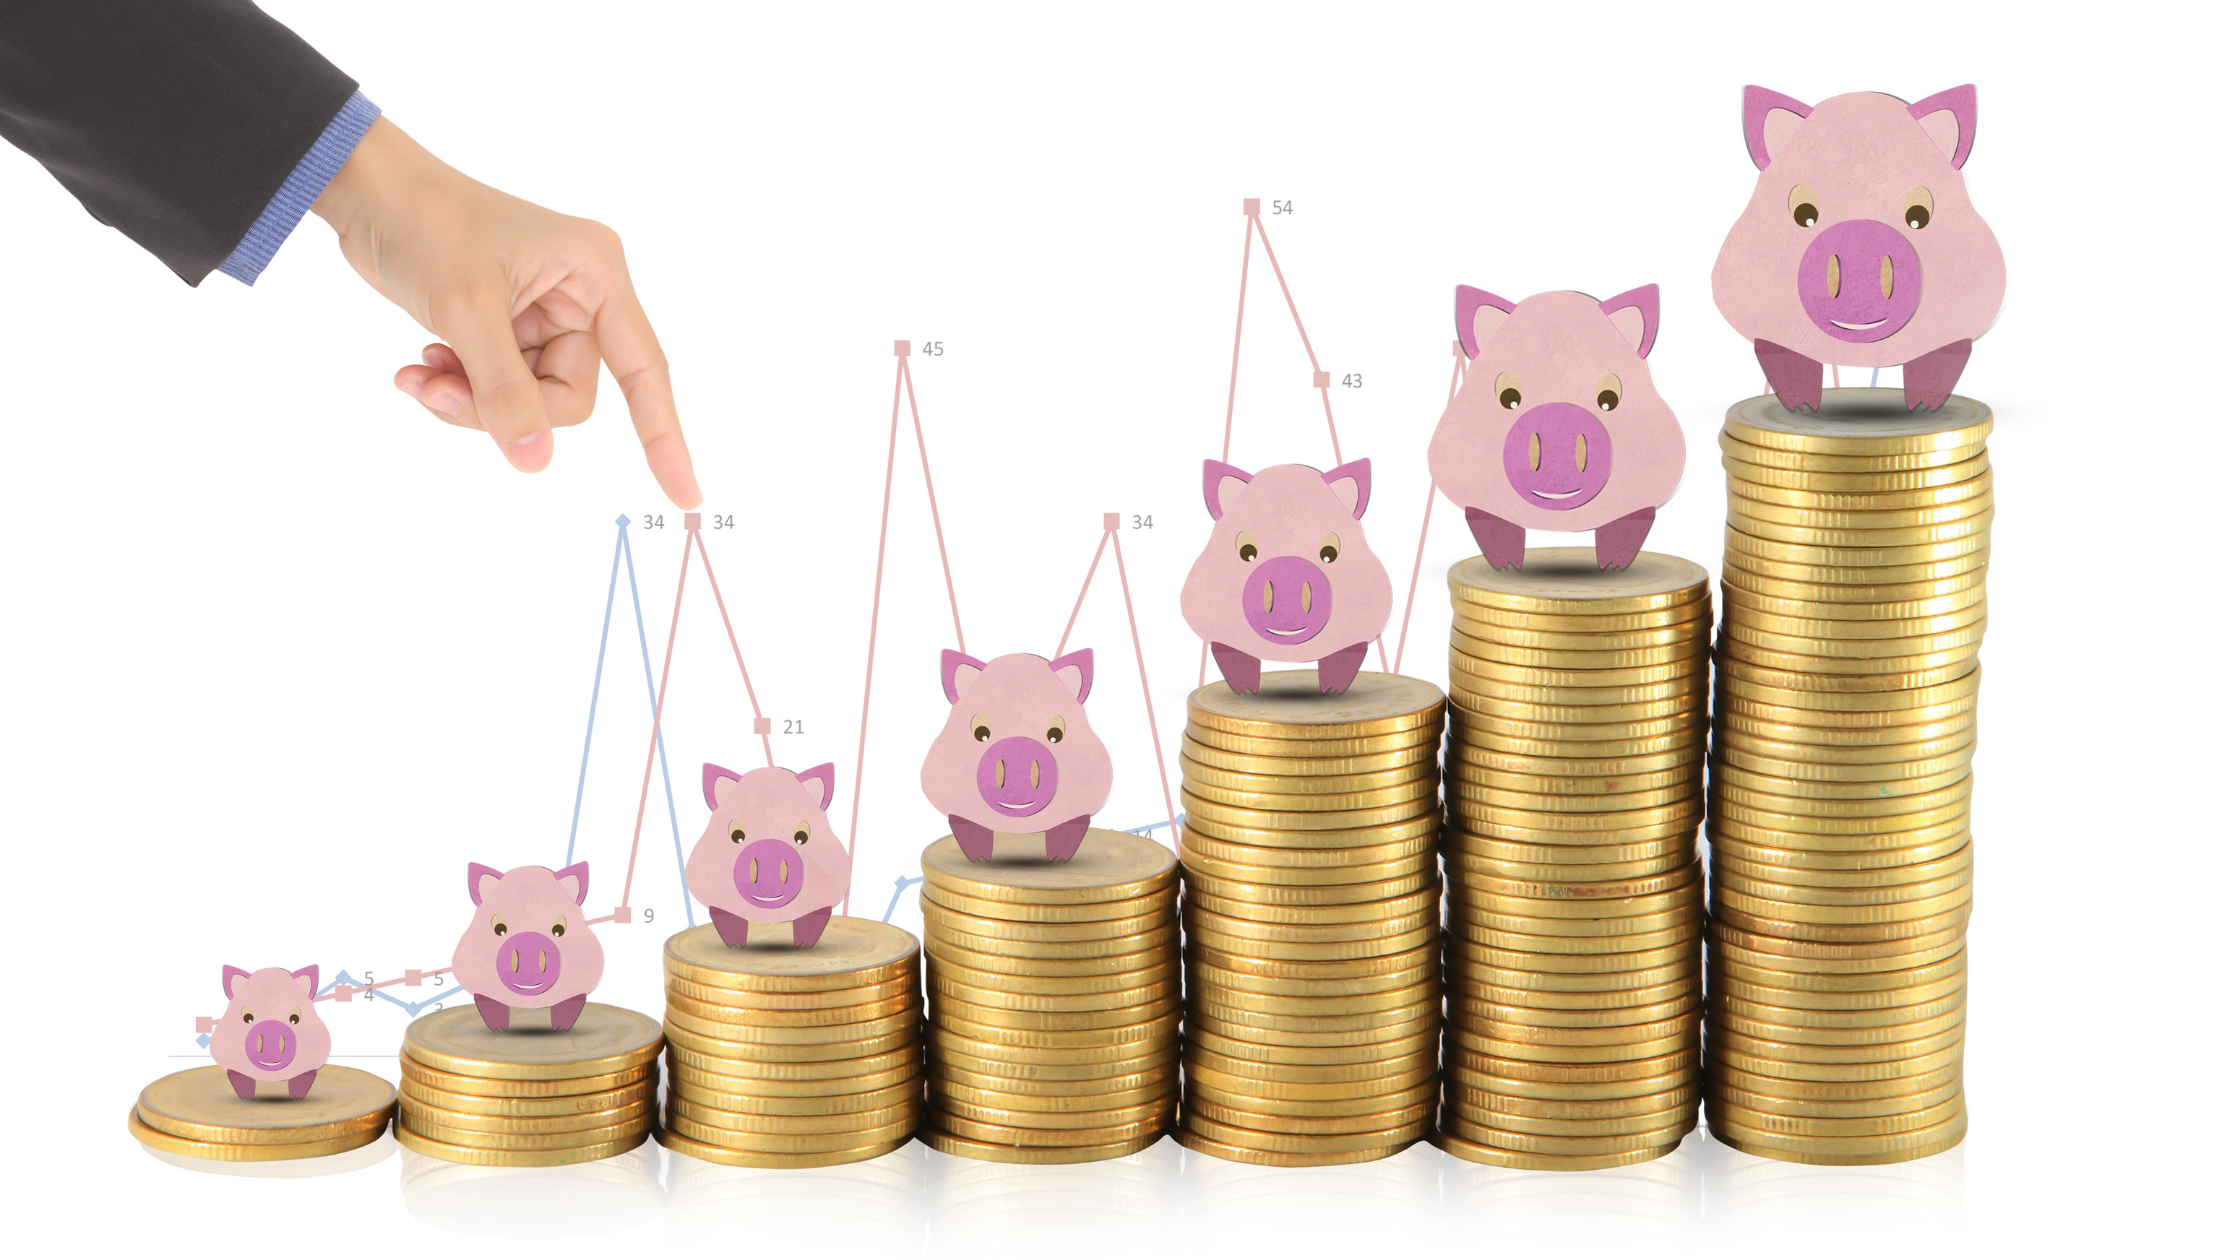 How can companies improve their cash flow?